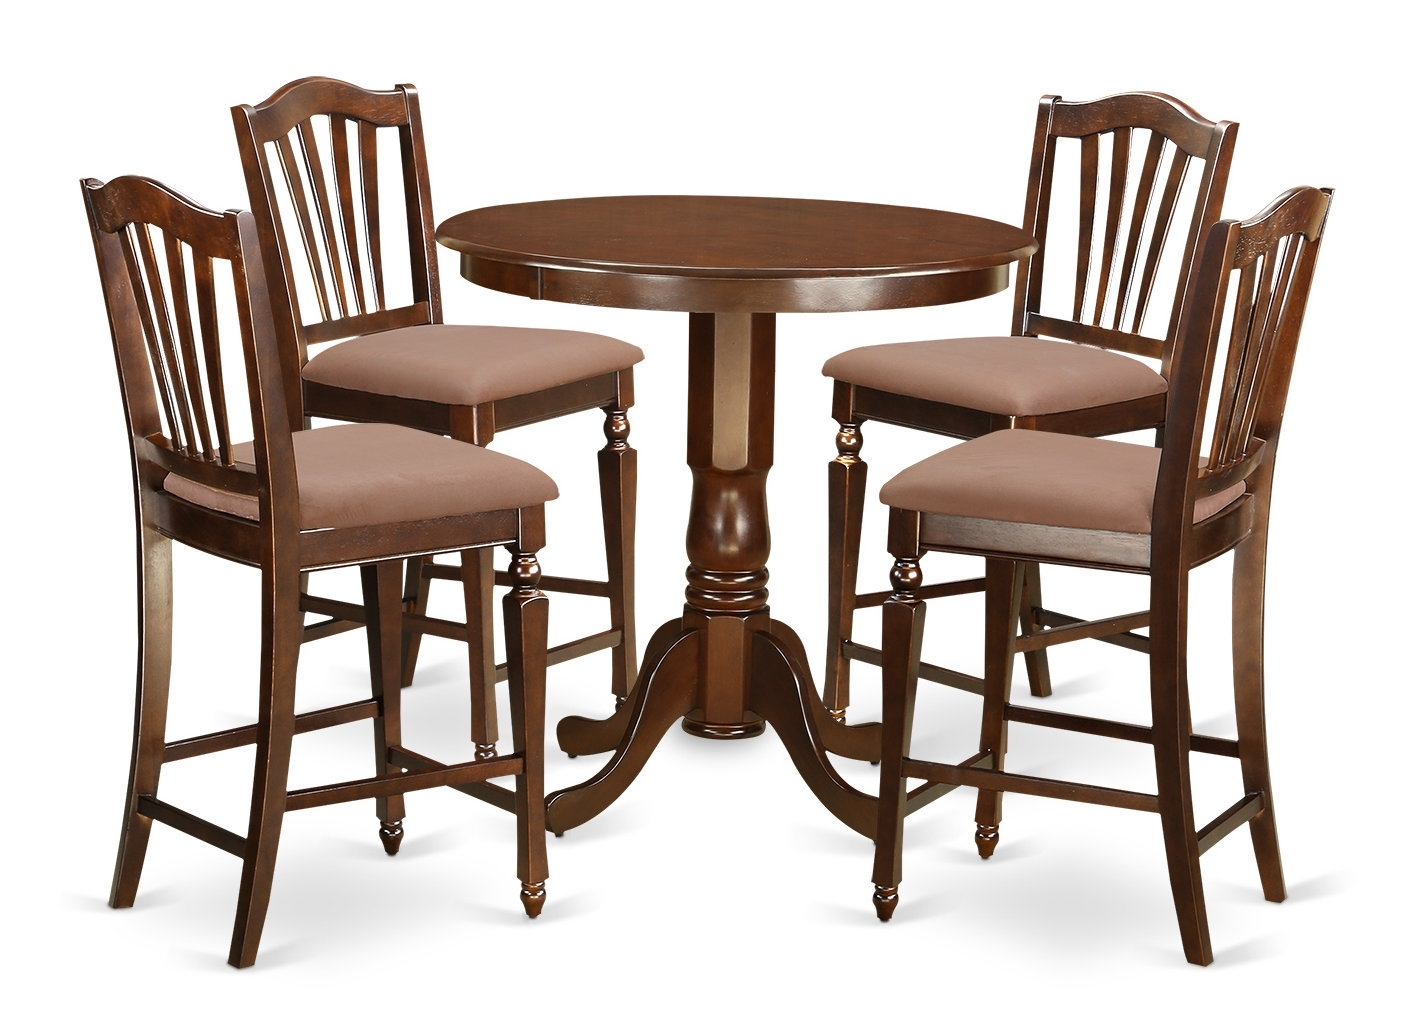 East West Jackson 5 Piece Counter Height Pub Table Set | Wayfair With Regard To Best And Newest Jaxon 6 Piece Rectangle Dining Sets With Bench & Uph Chairs (Photo 20 of 20)